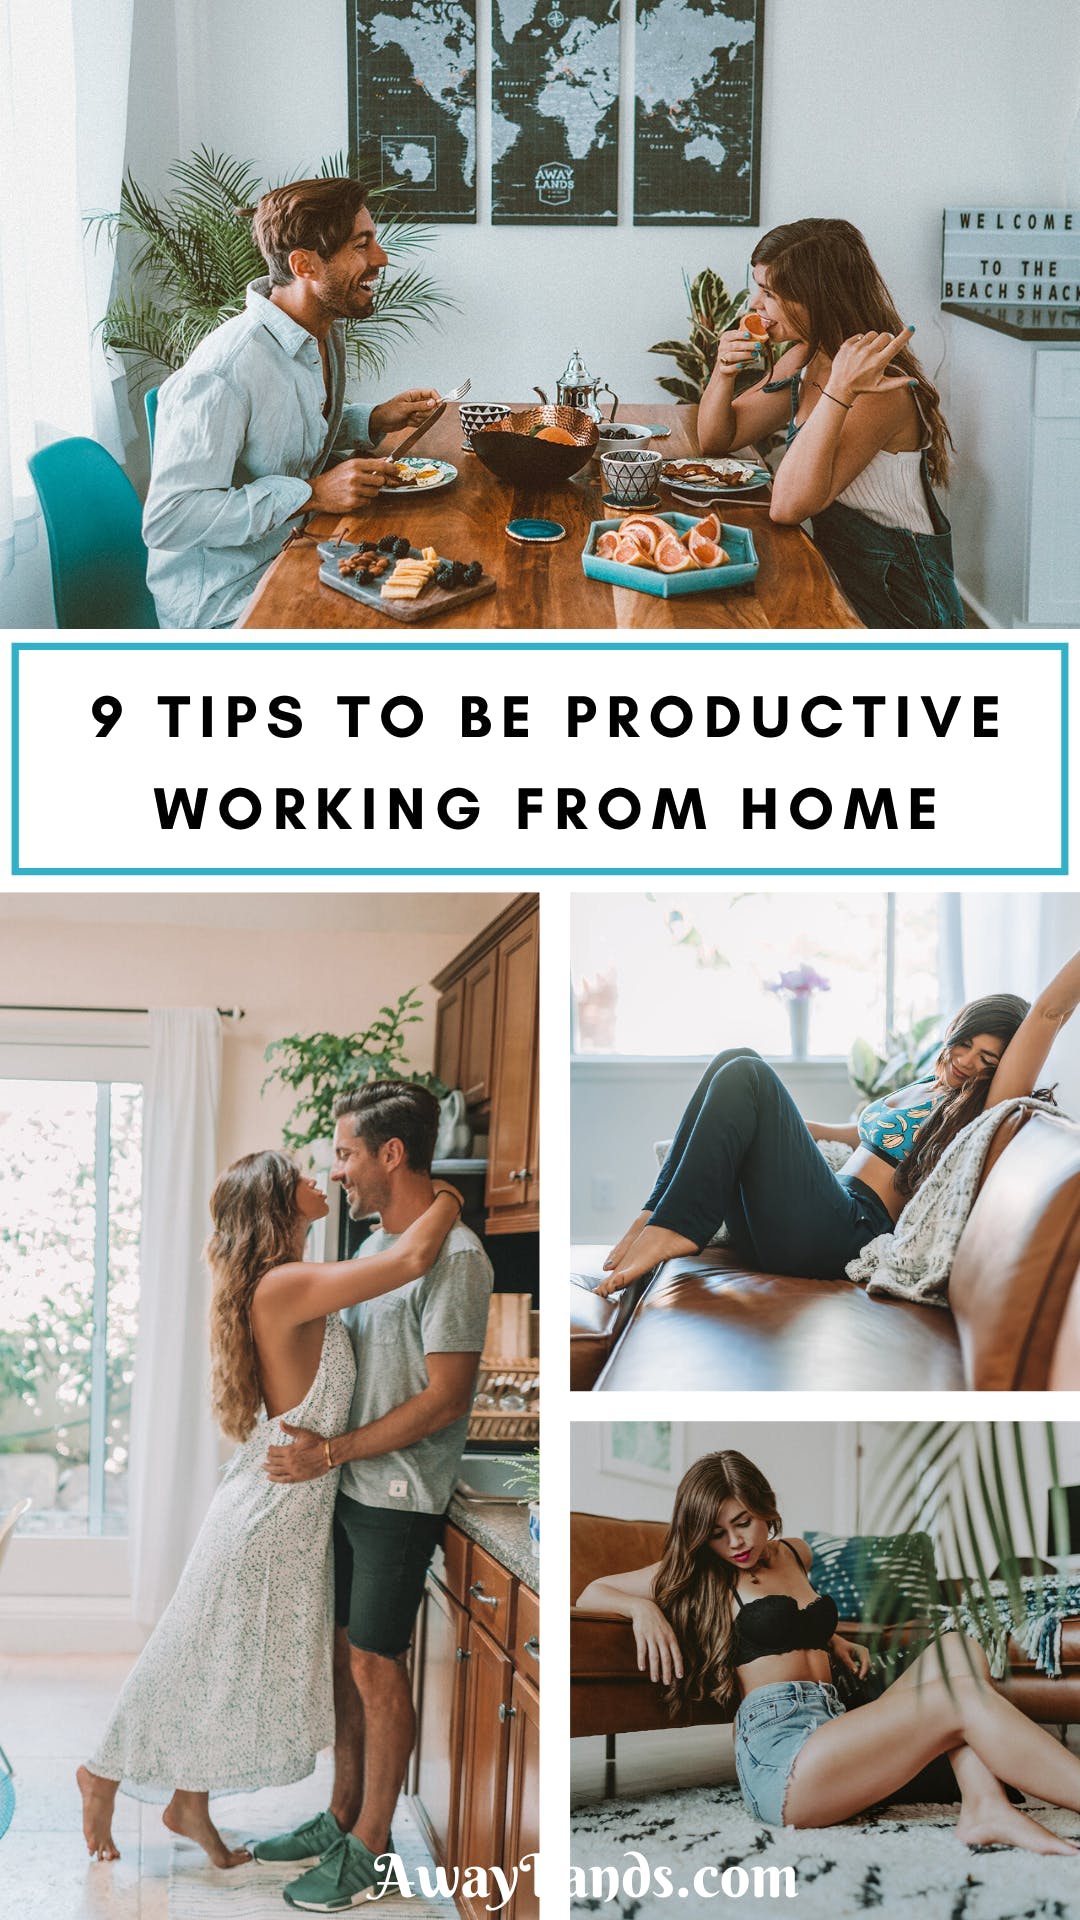 Struggling with working from home? Check out our list of 9 tips for how to be productive working from home from a couple who has worked at home together for years. #workfromhome #productivity | productivity hacks | productivity tips | productive day routine | working from home tips | working from home couple | working at home | how to be productive working from home | working from home productivity | being productive working from home | work from home tips | work from home productivity tips |